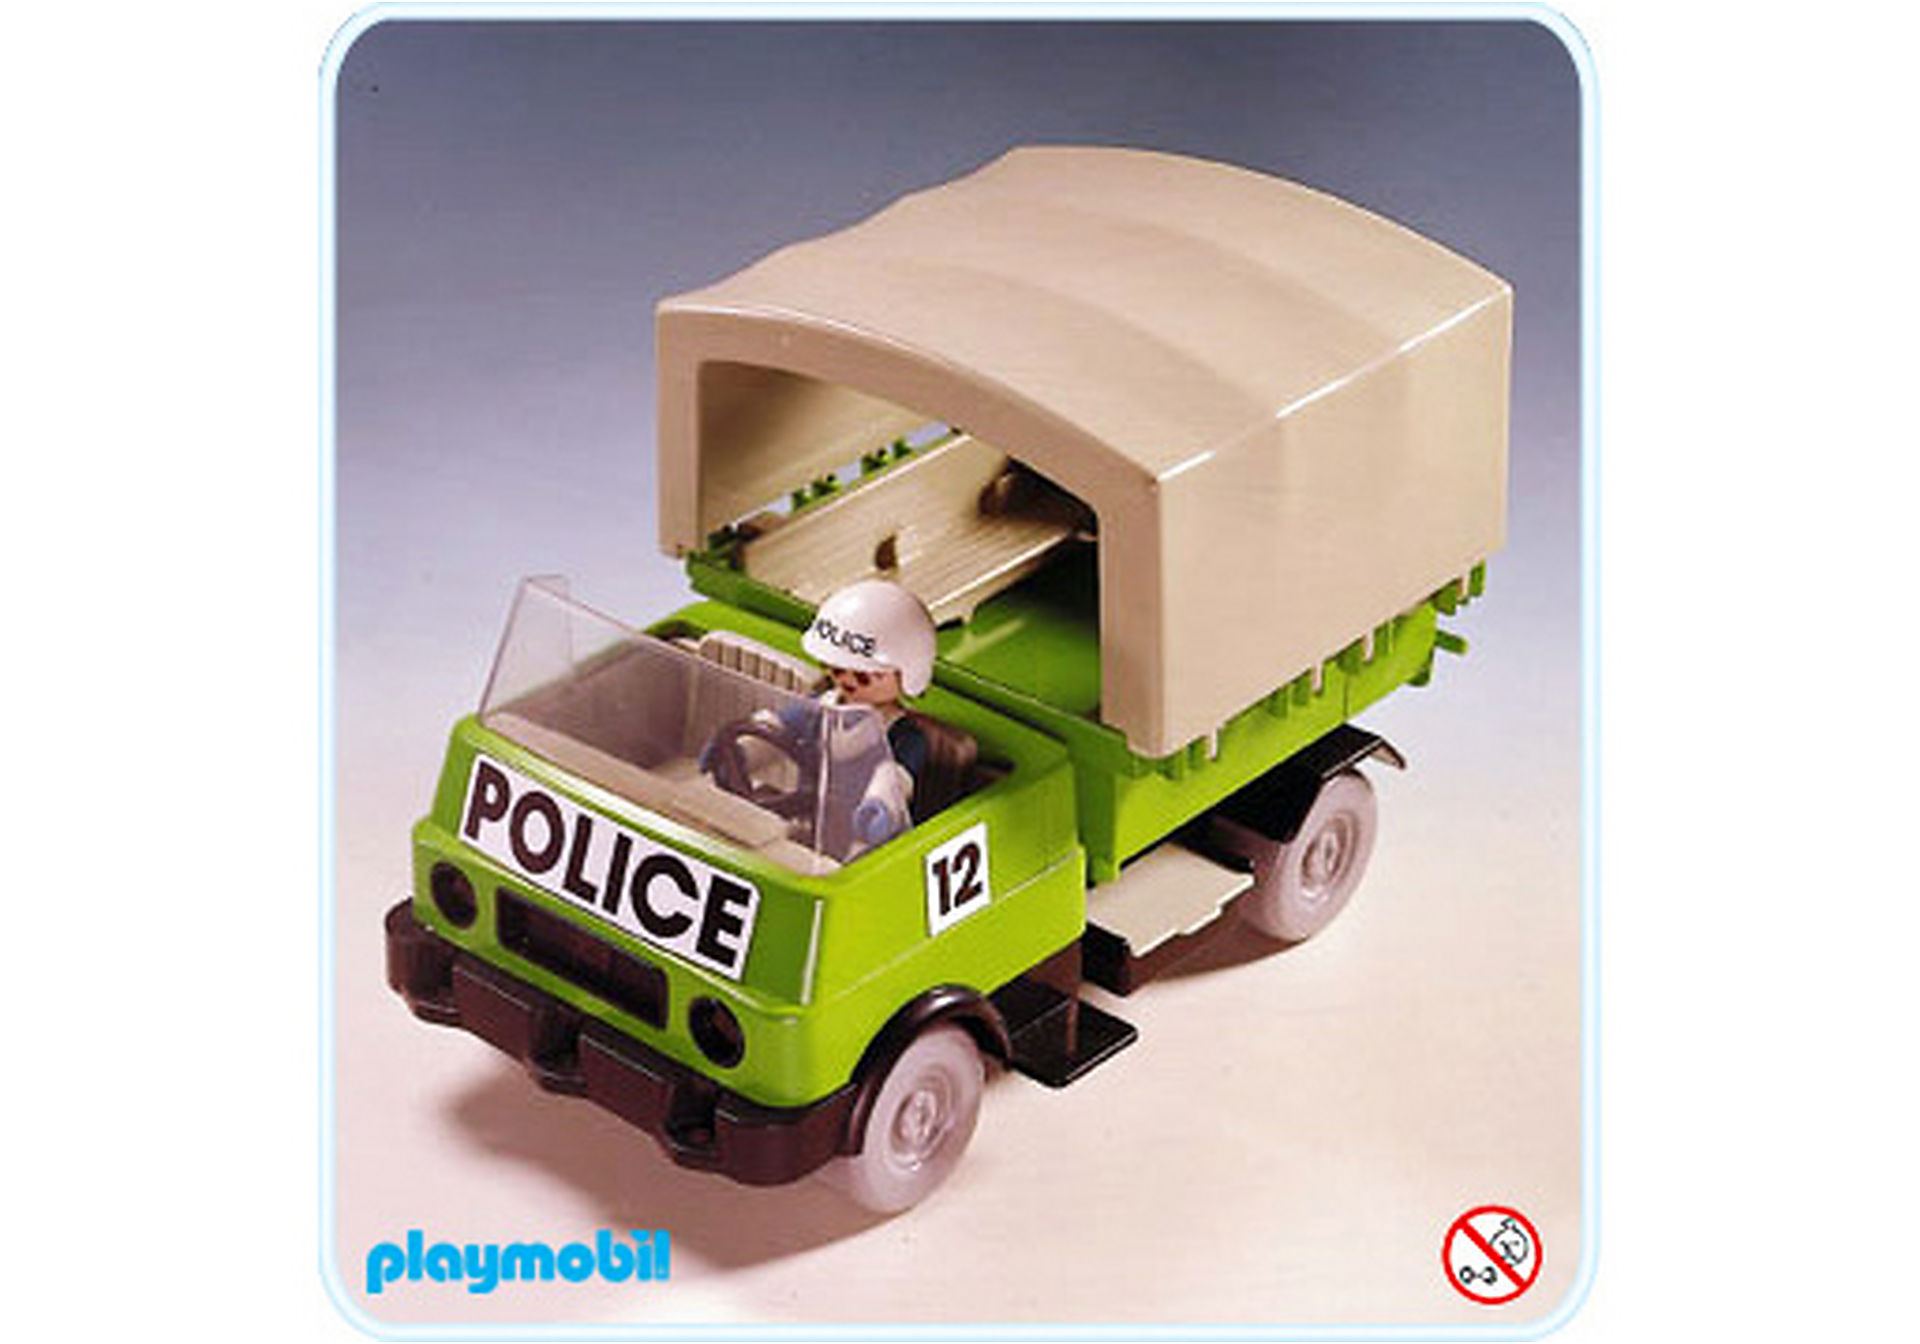 http://media.playmobil.com/i/playmobil/3233-A_product_detail/Polizei - Auto